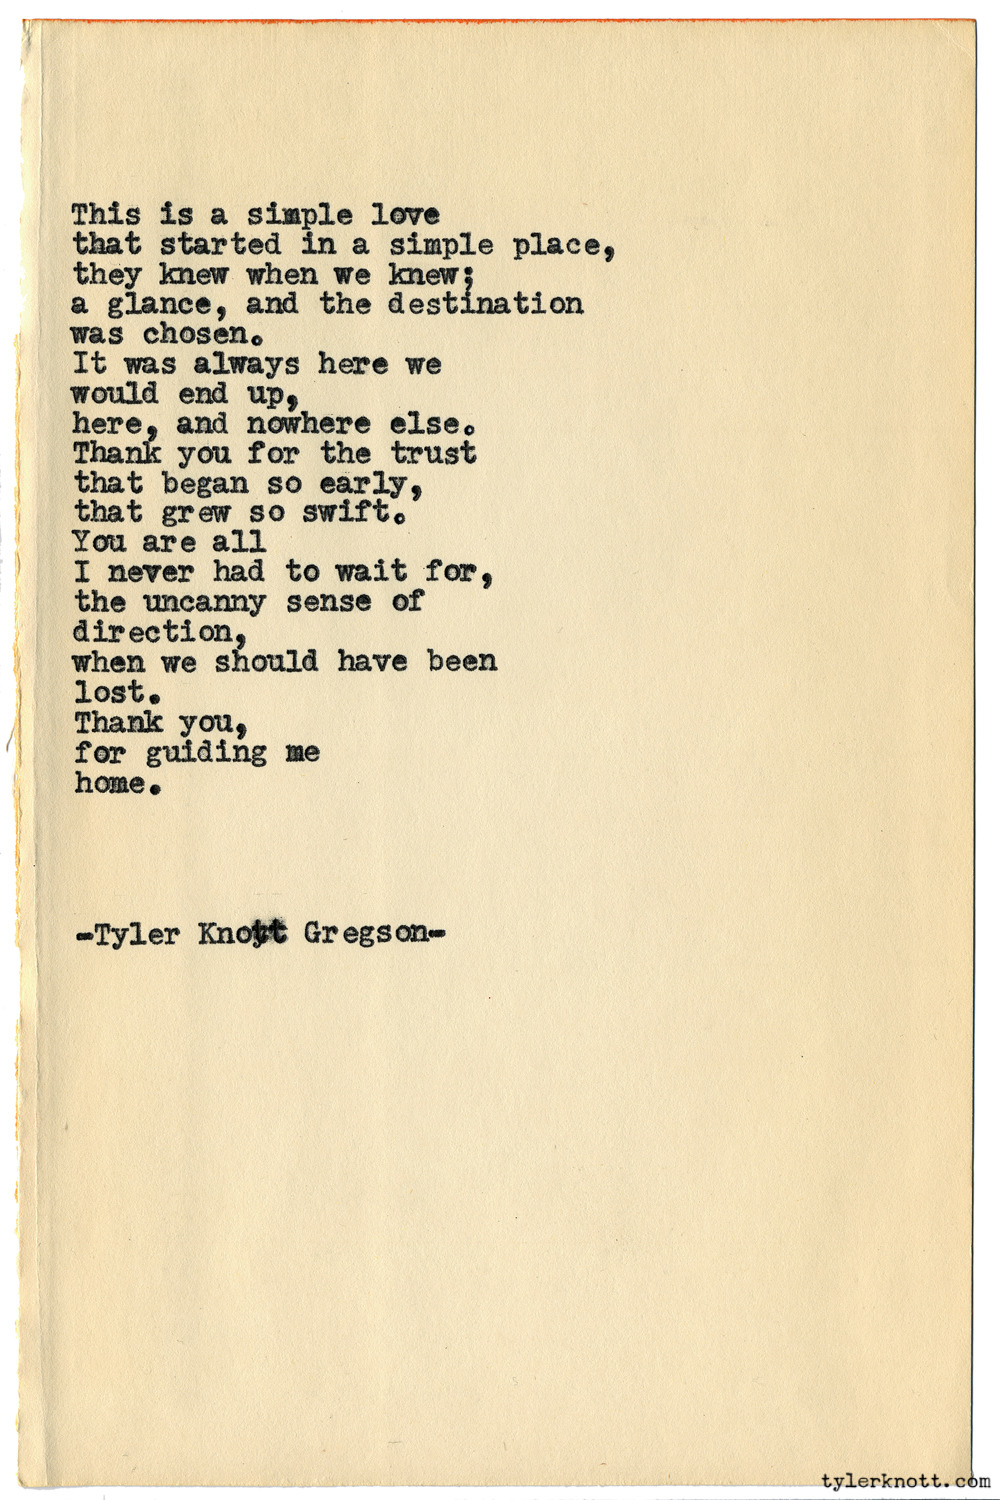 Typewriter Series #1403 by Tyler Knott GregsonCome say hello @TylerKnott on Instagram, Facebook, and Twitter!